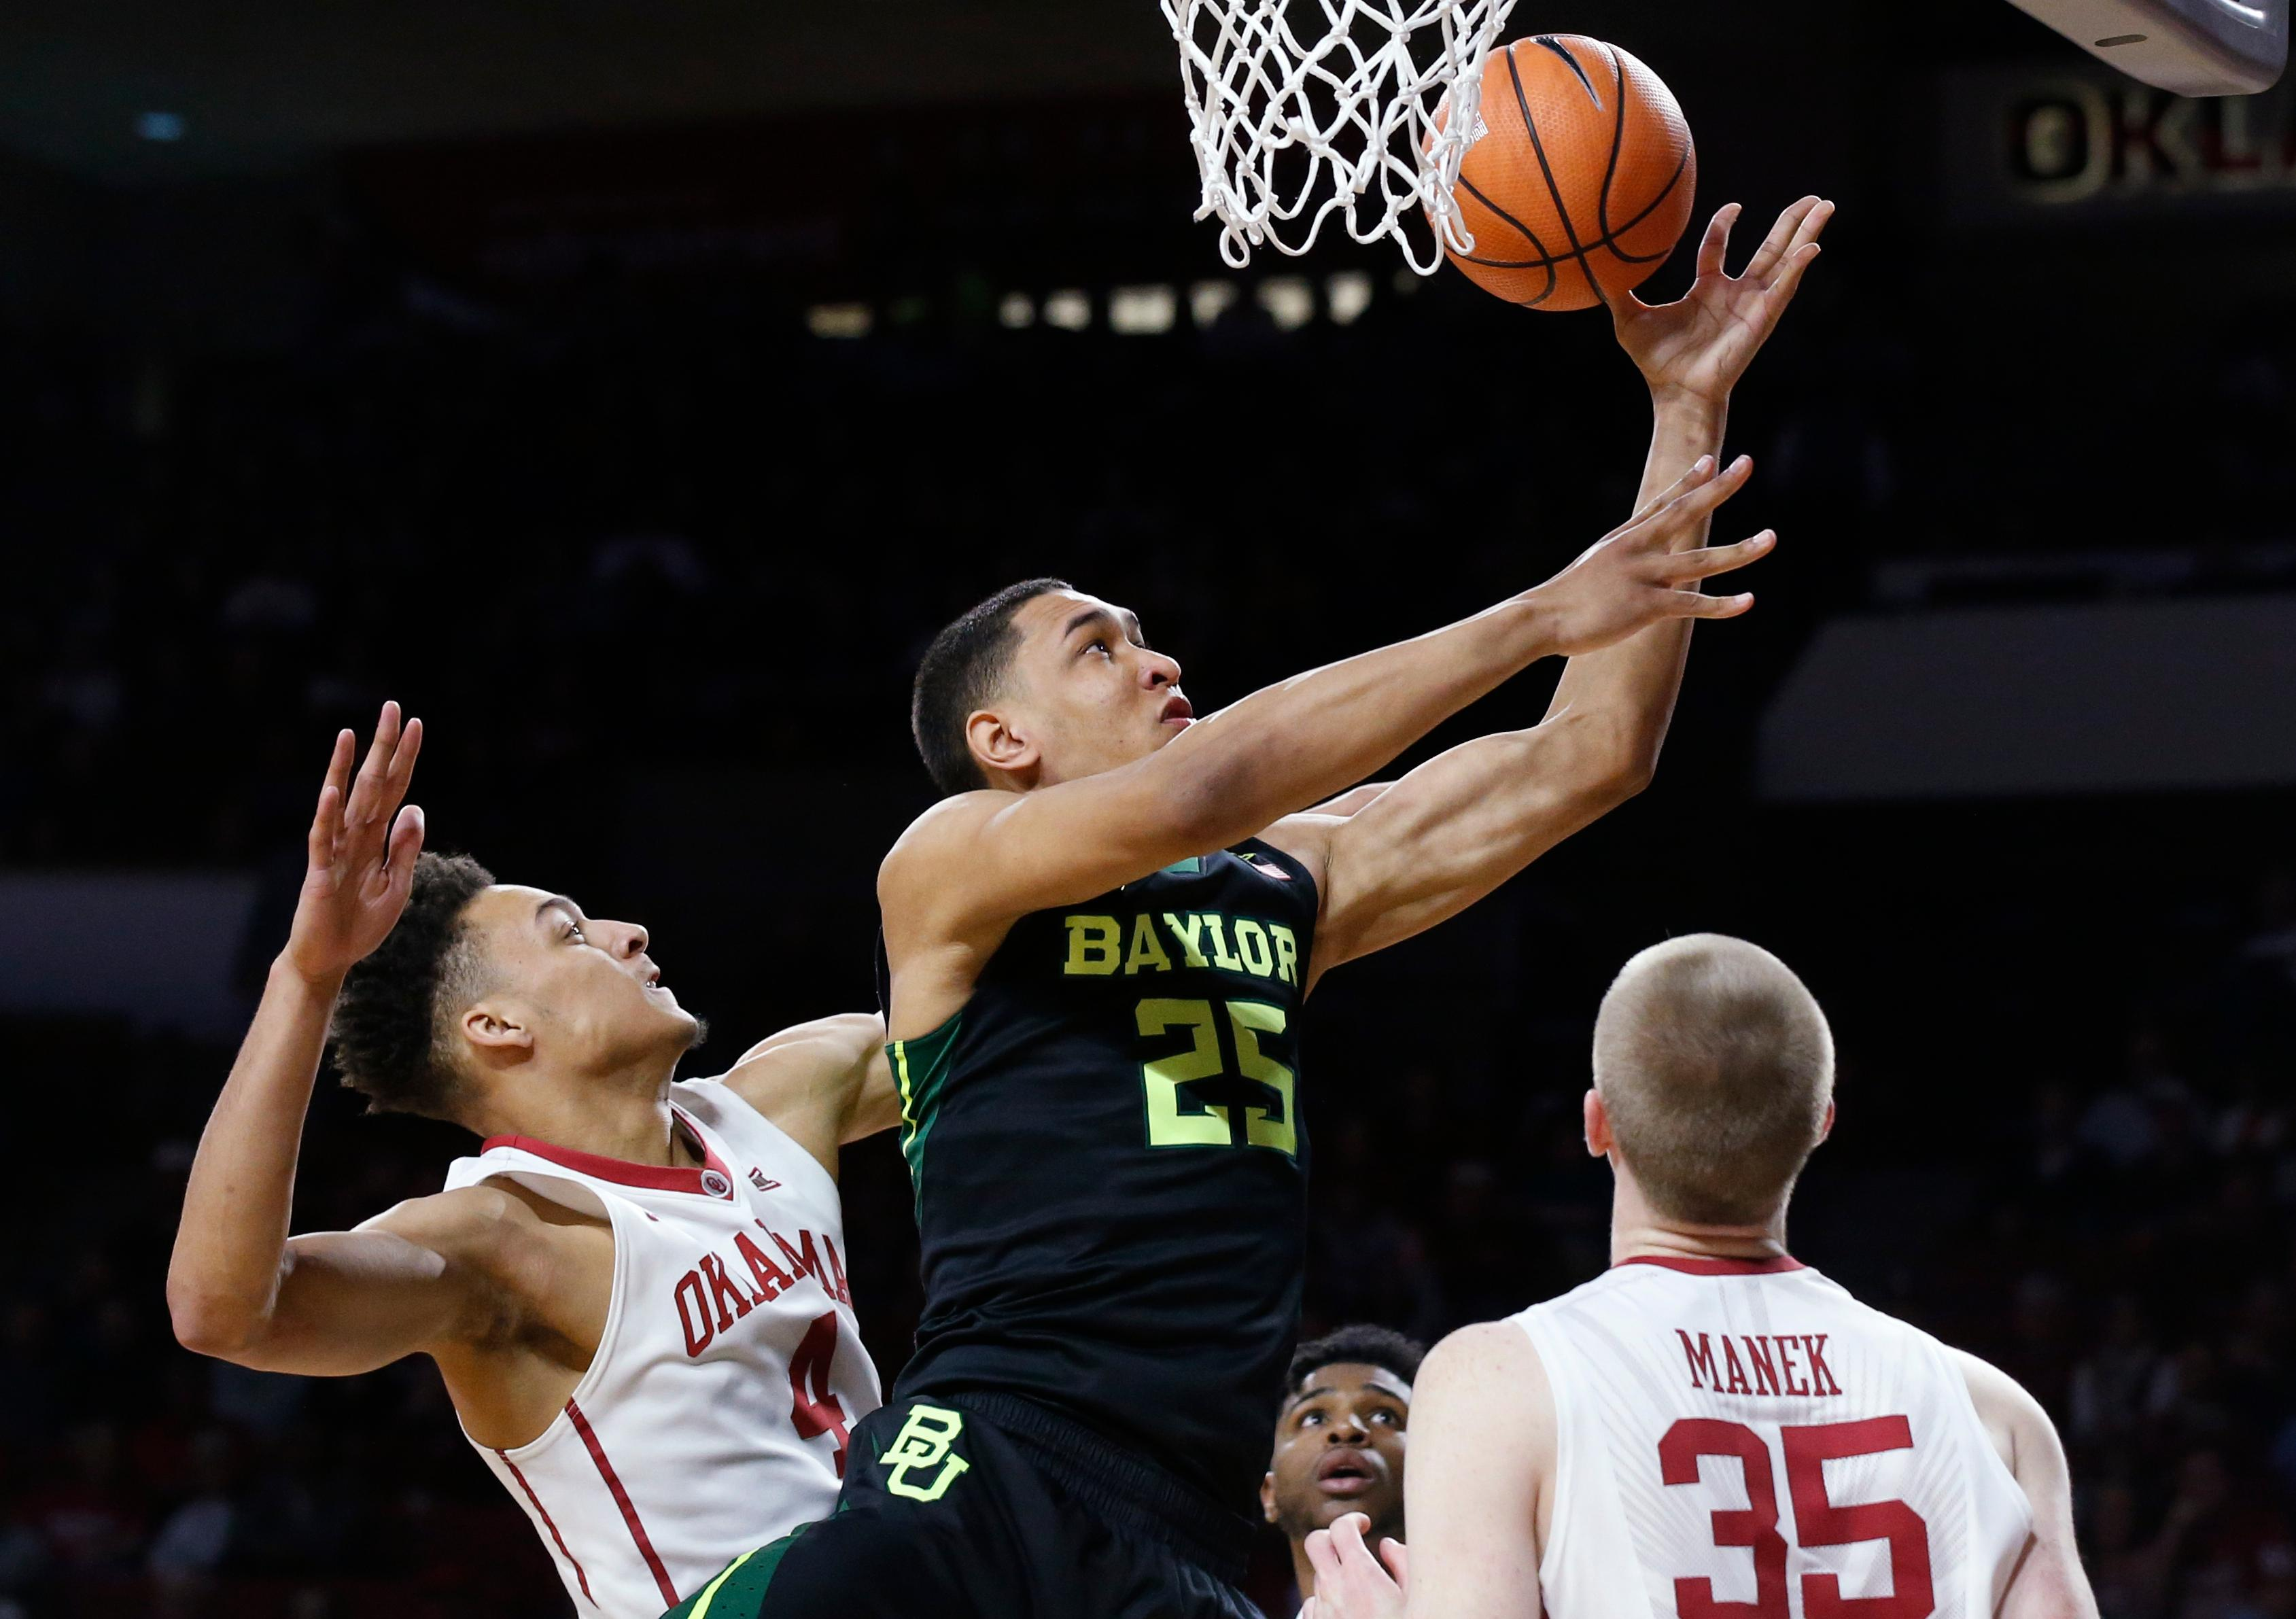 Baylor forward Tristan Clark (25) shoots between Oklahoma center Jamuni McNeace (4) and forward Brady Manek (35) during the first half of an NCAA college basketball game in Norman, Okla., Tuesday, Jan. 30, 2018. (AP Photo/Sue Ogrocki)